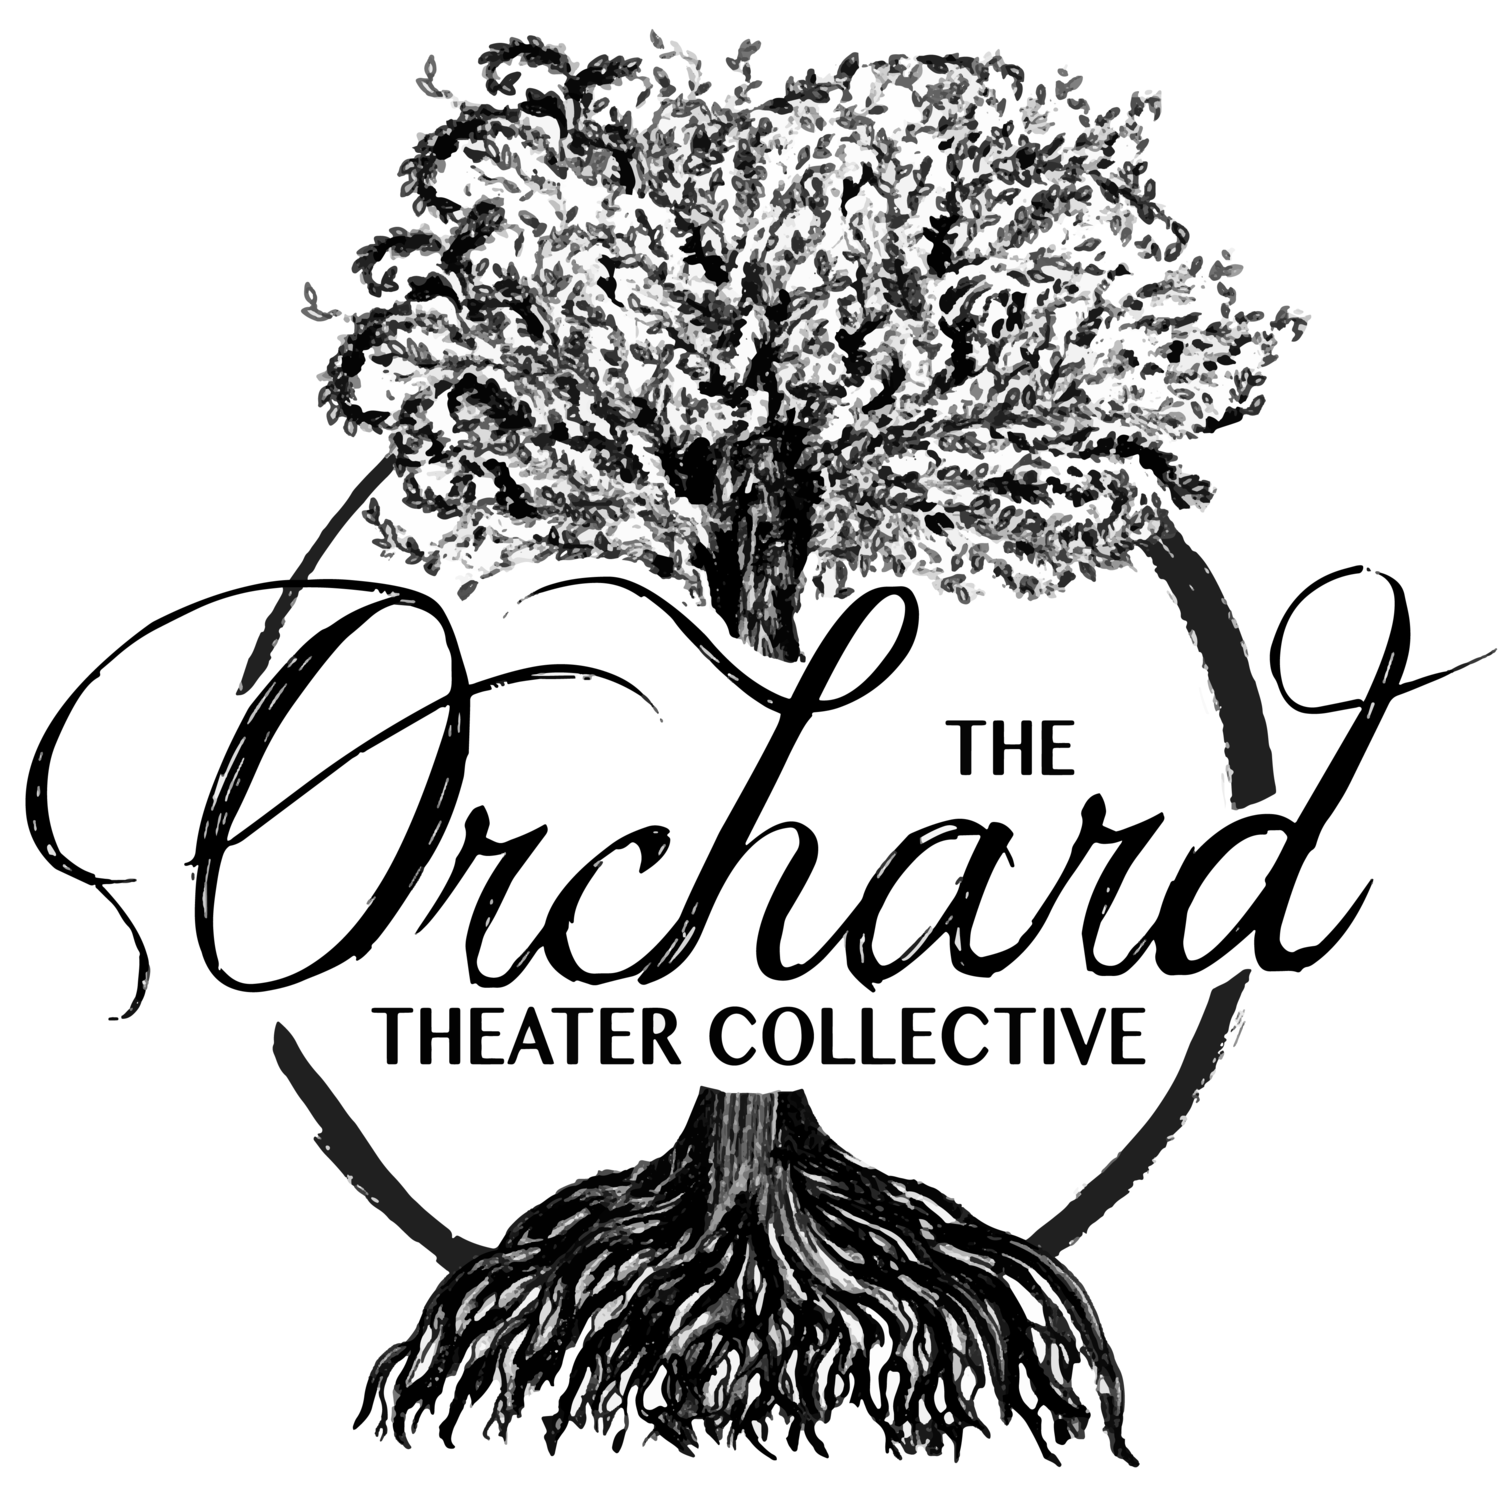 The Orchard Theater Collective